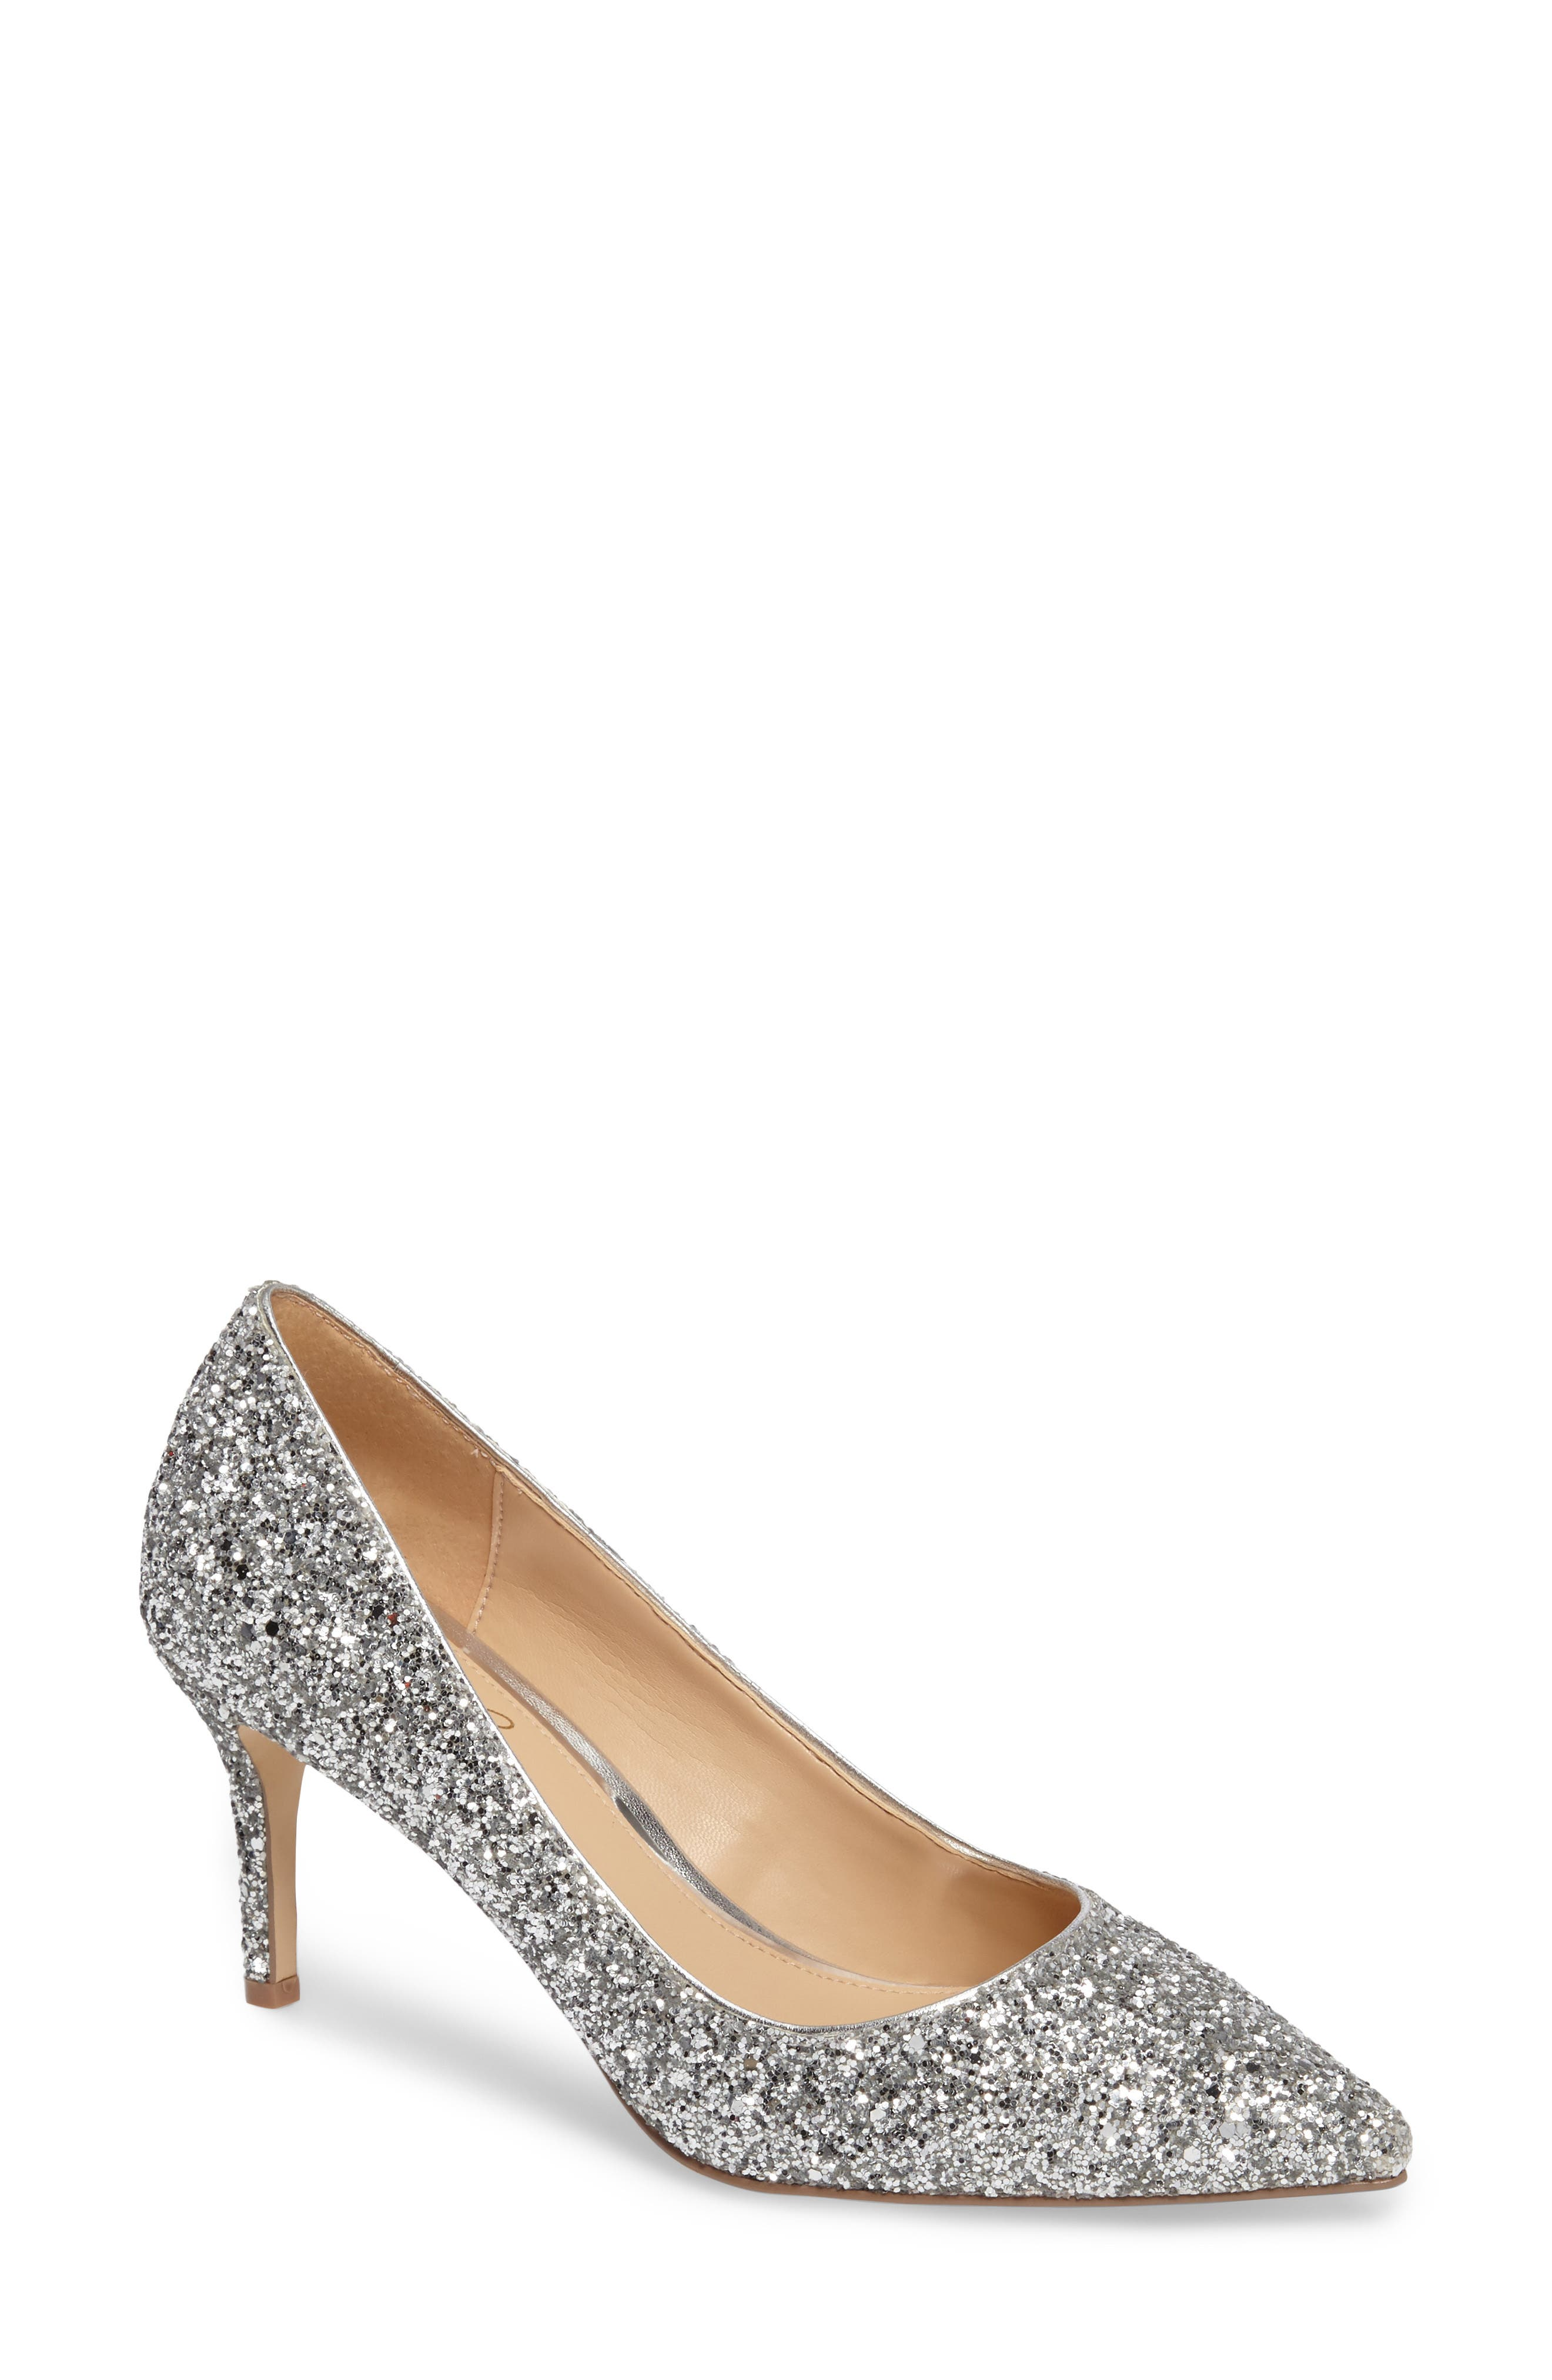 Lyla Glitter Pointy Toe Pump,                             Main thumbnail 1, color,                             Silver